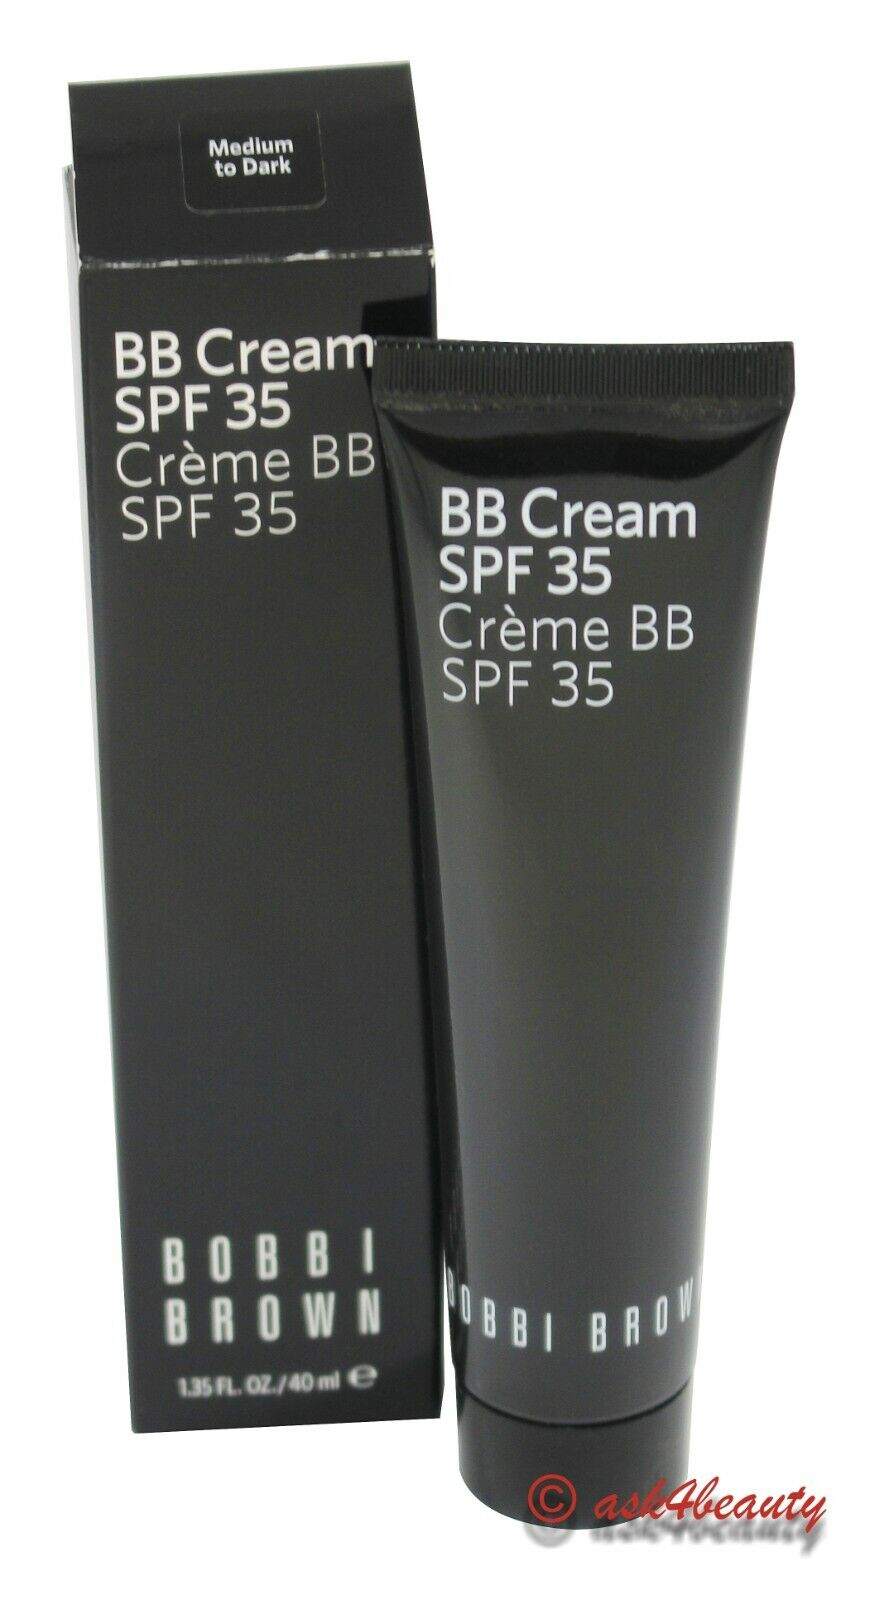 Bobbi Brown Bb Cream Spf 35 - Medium To Dark By Bobbi Brown